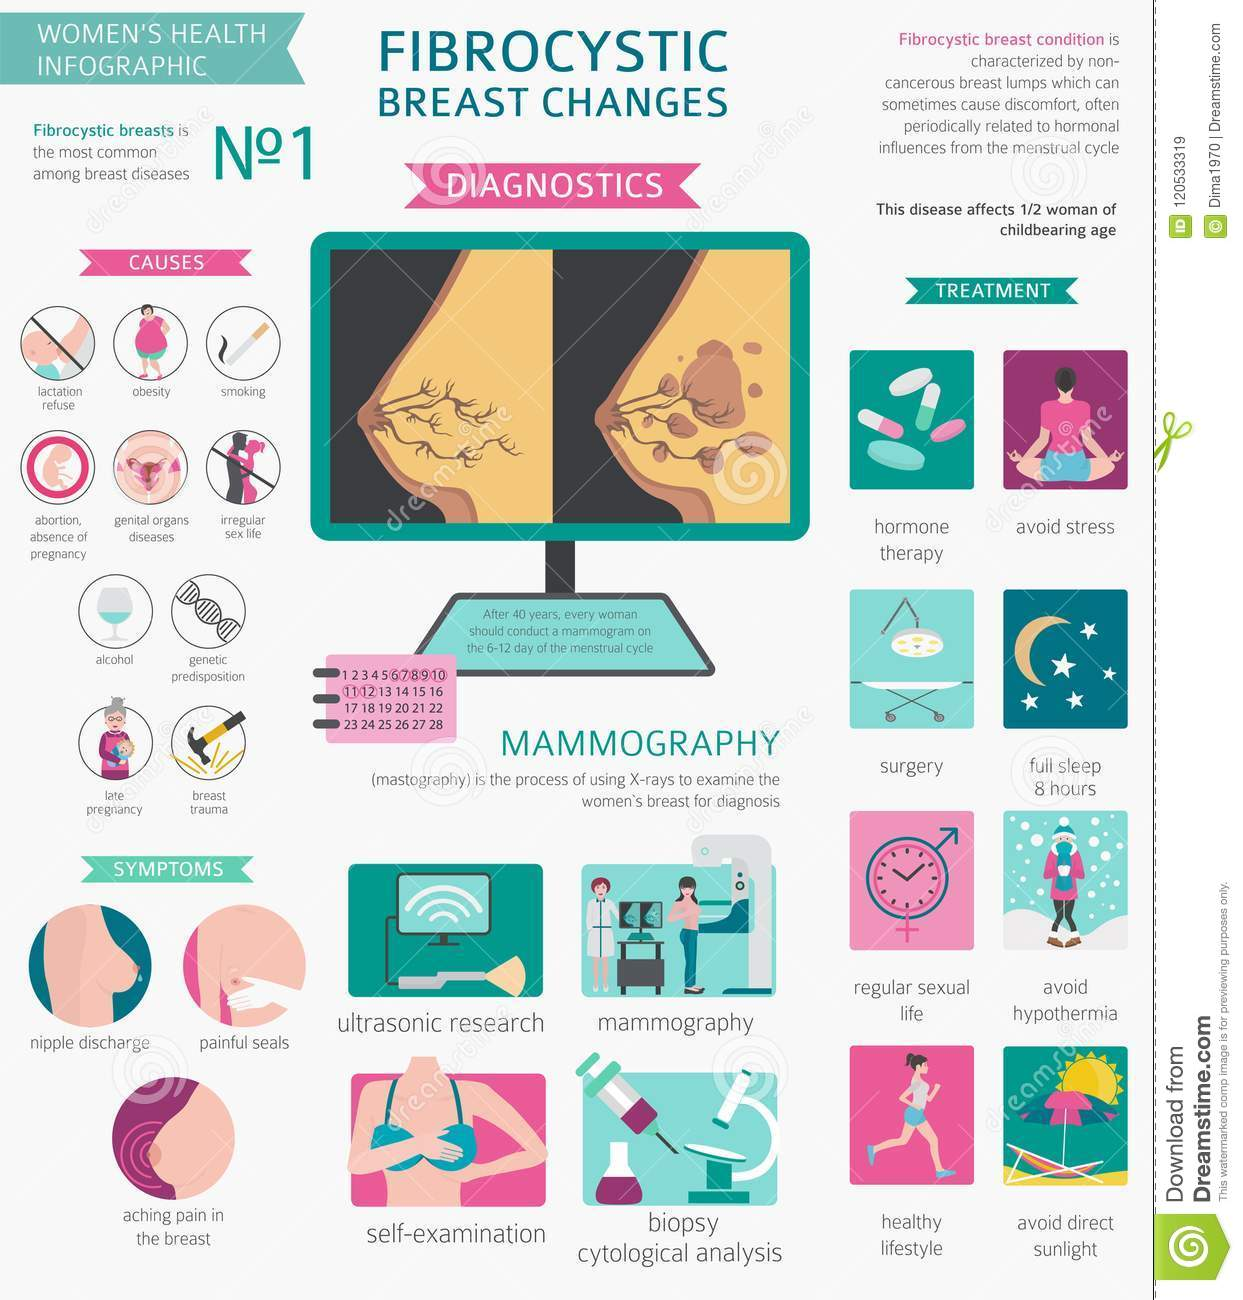 Fibrocystic breast disease causes